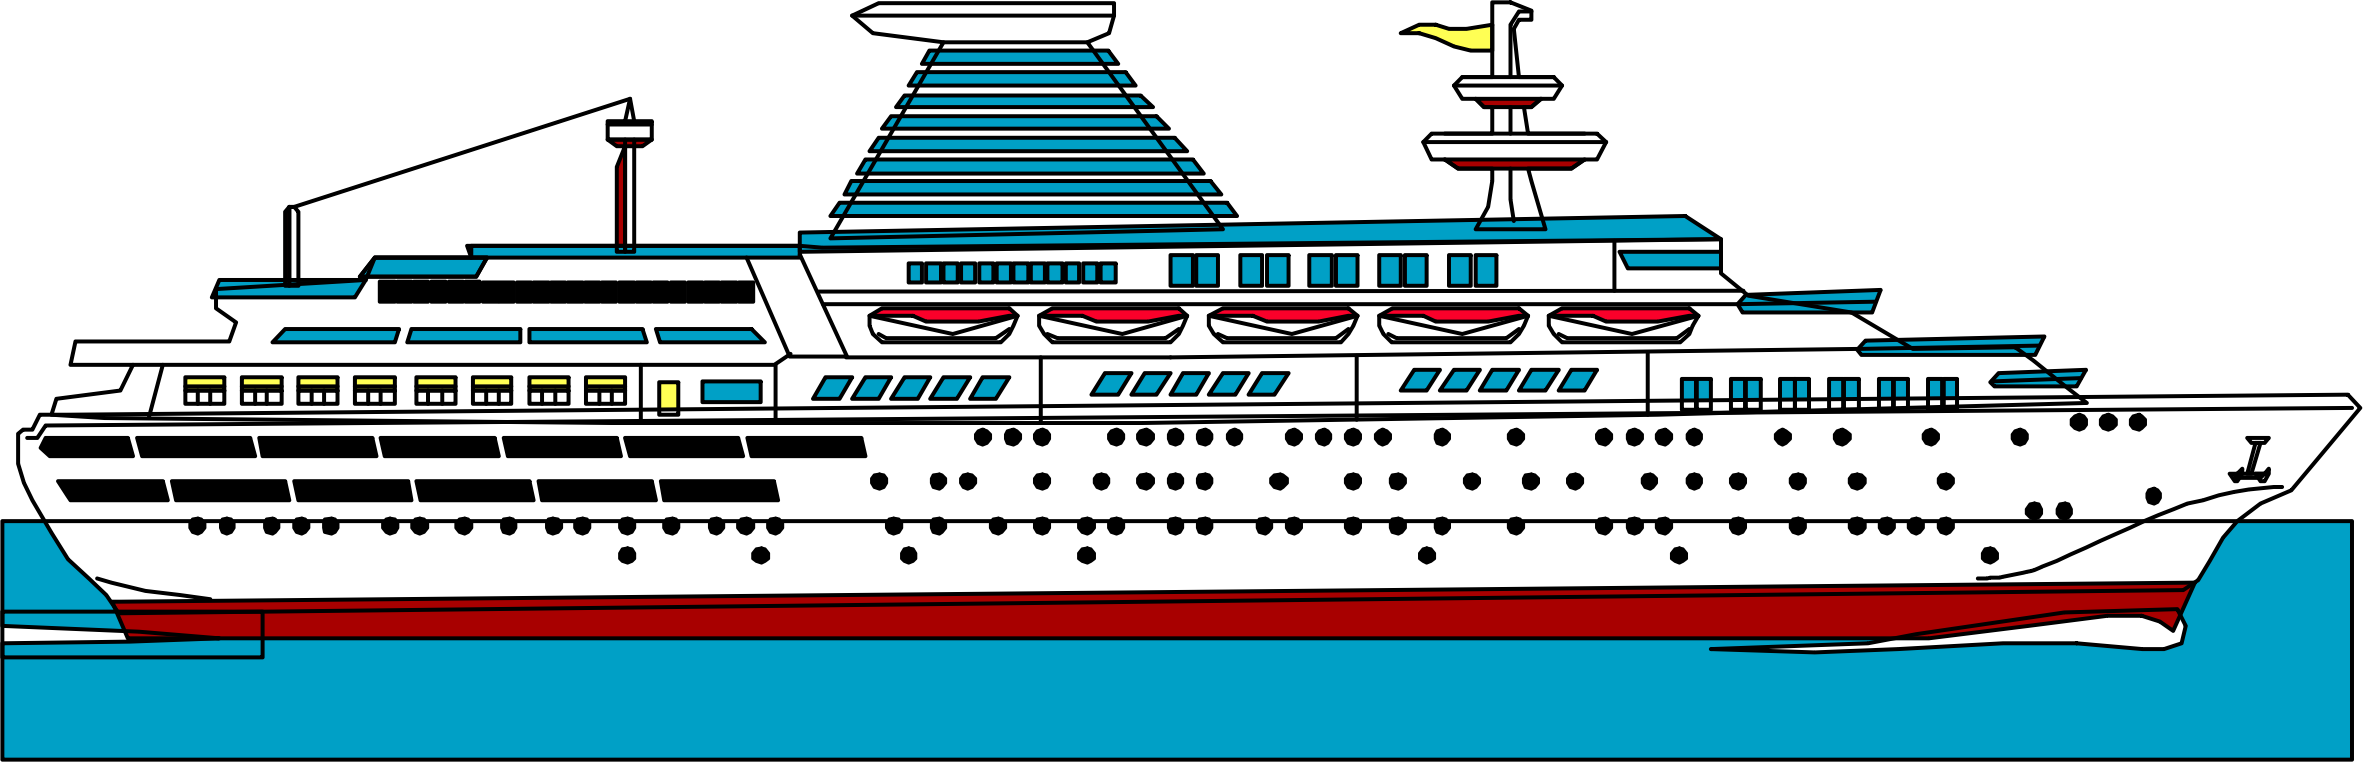 Cruise clipart icon. Yacht icons png free